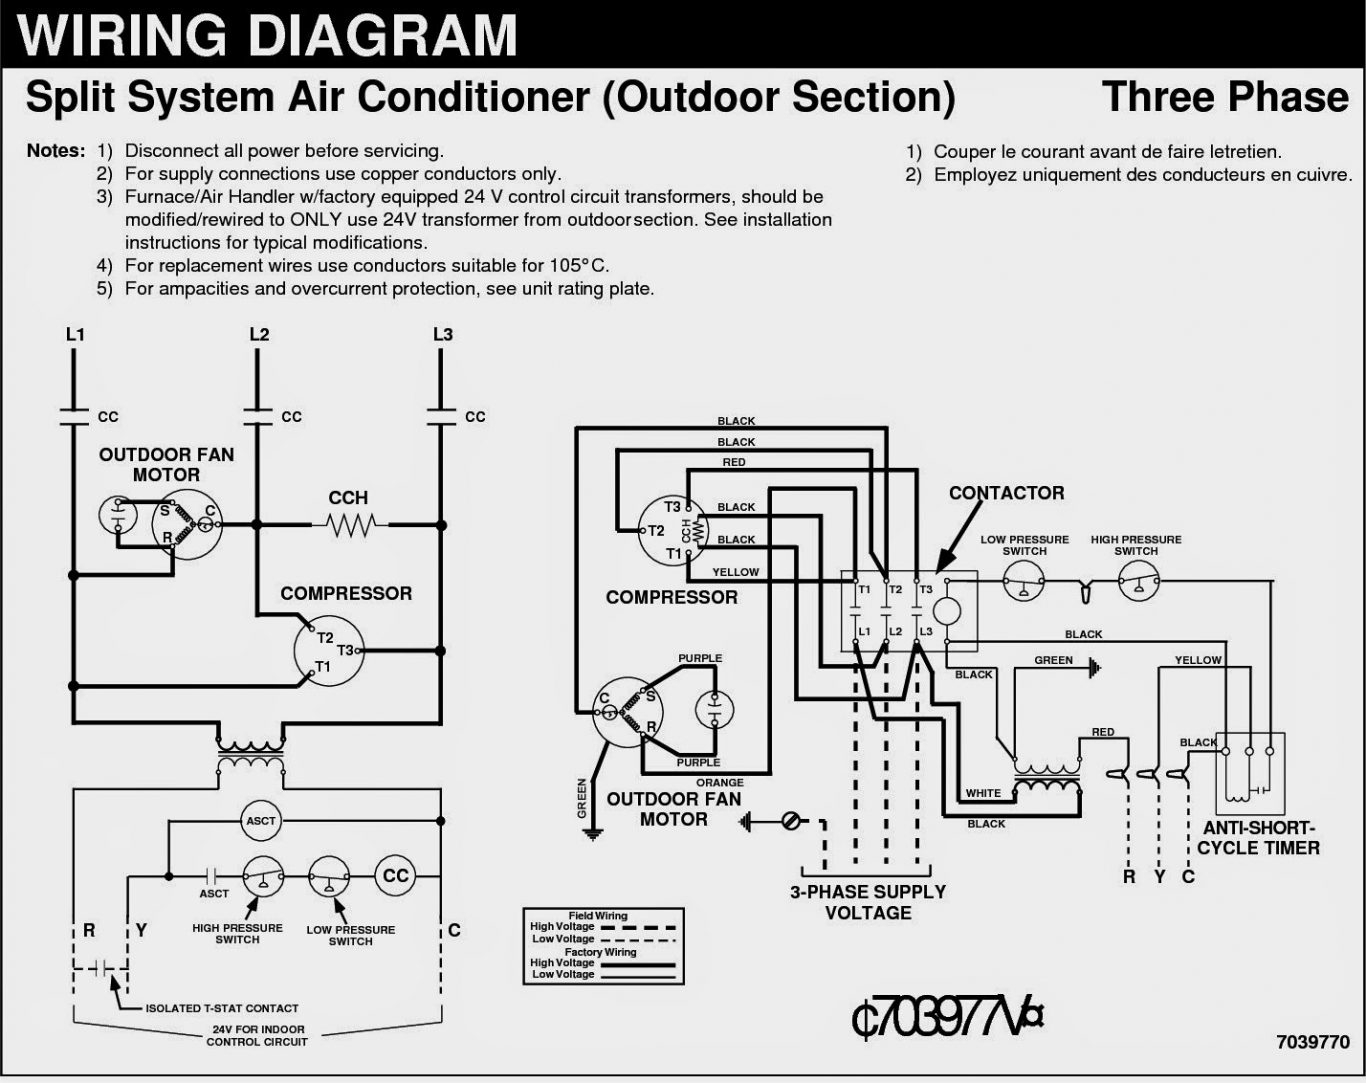 vita spa l200 wiring diagram gallery wiring diagram 2000 nissan xterra c20 wiring diagram 2000 #14